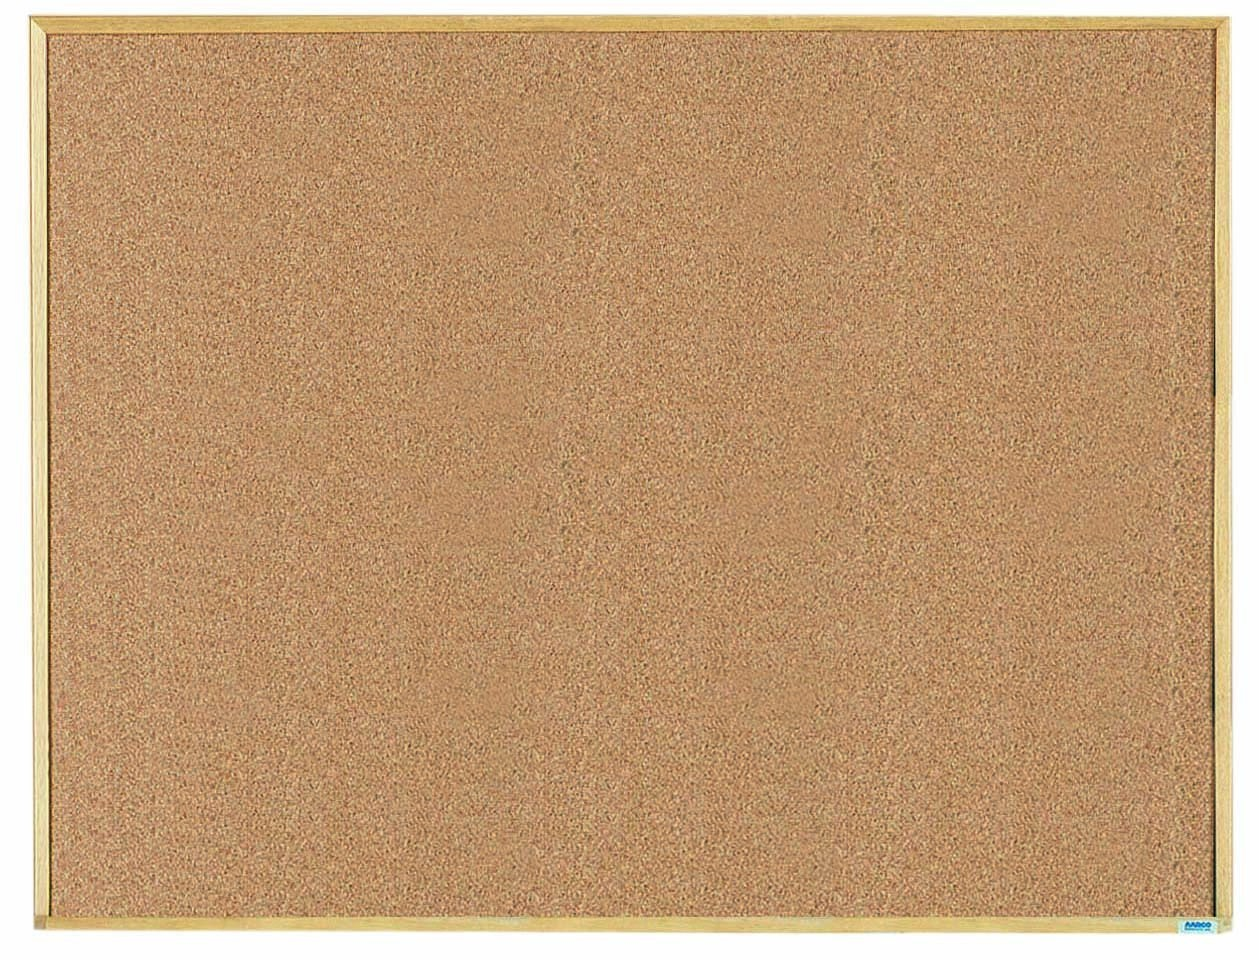 """Aarco Products EB3648 Economy Series Natural Pebble Grain Cork Bulletin Board with Wood Frame, 36 x 48"""""""